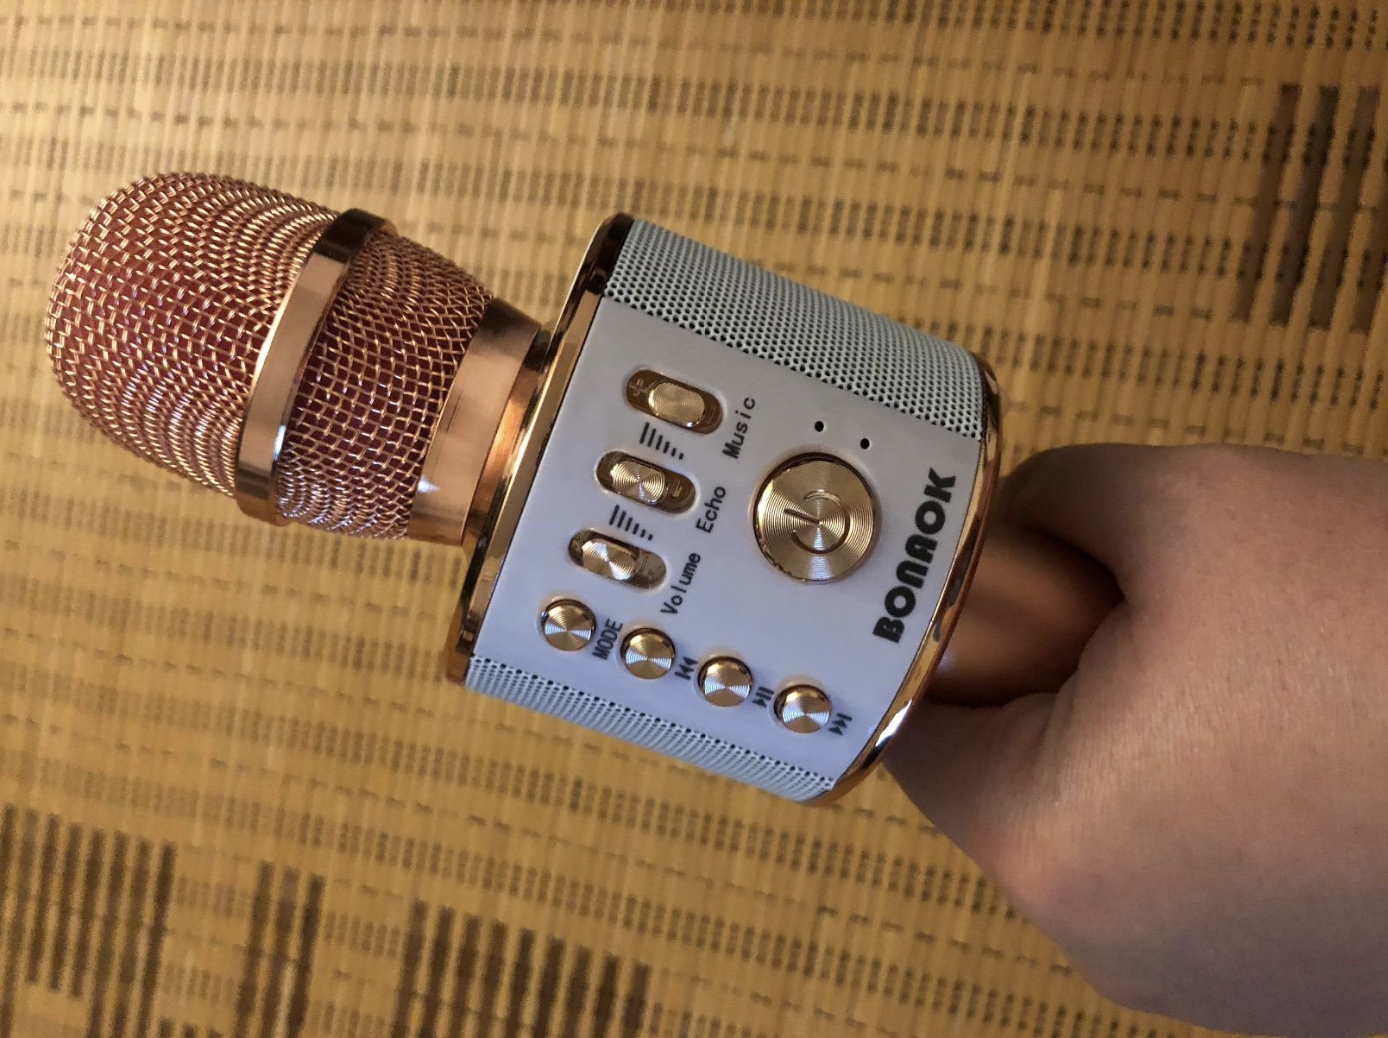 Reviewer image of a rose gold mic showing the volume and echo controls